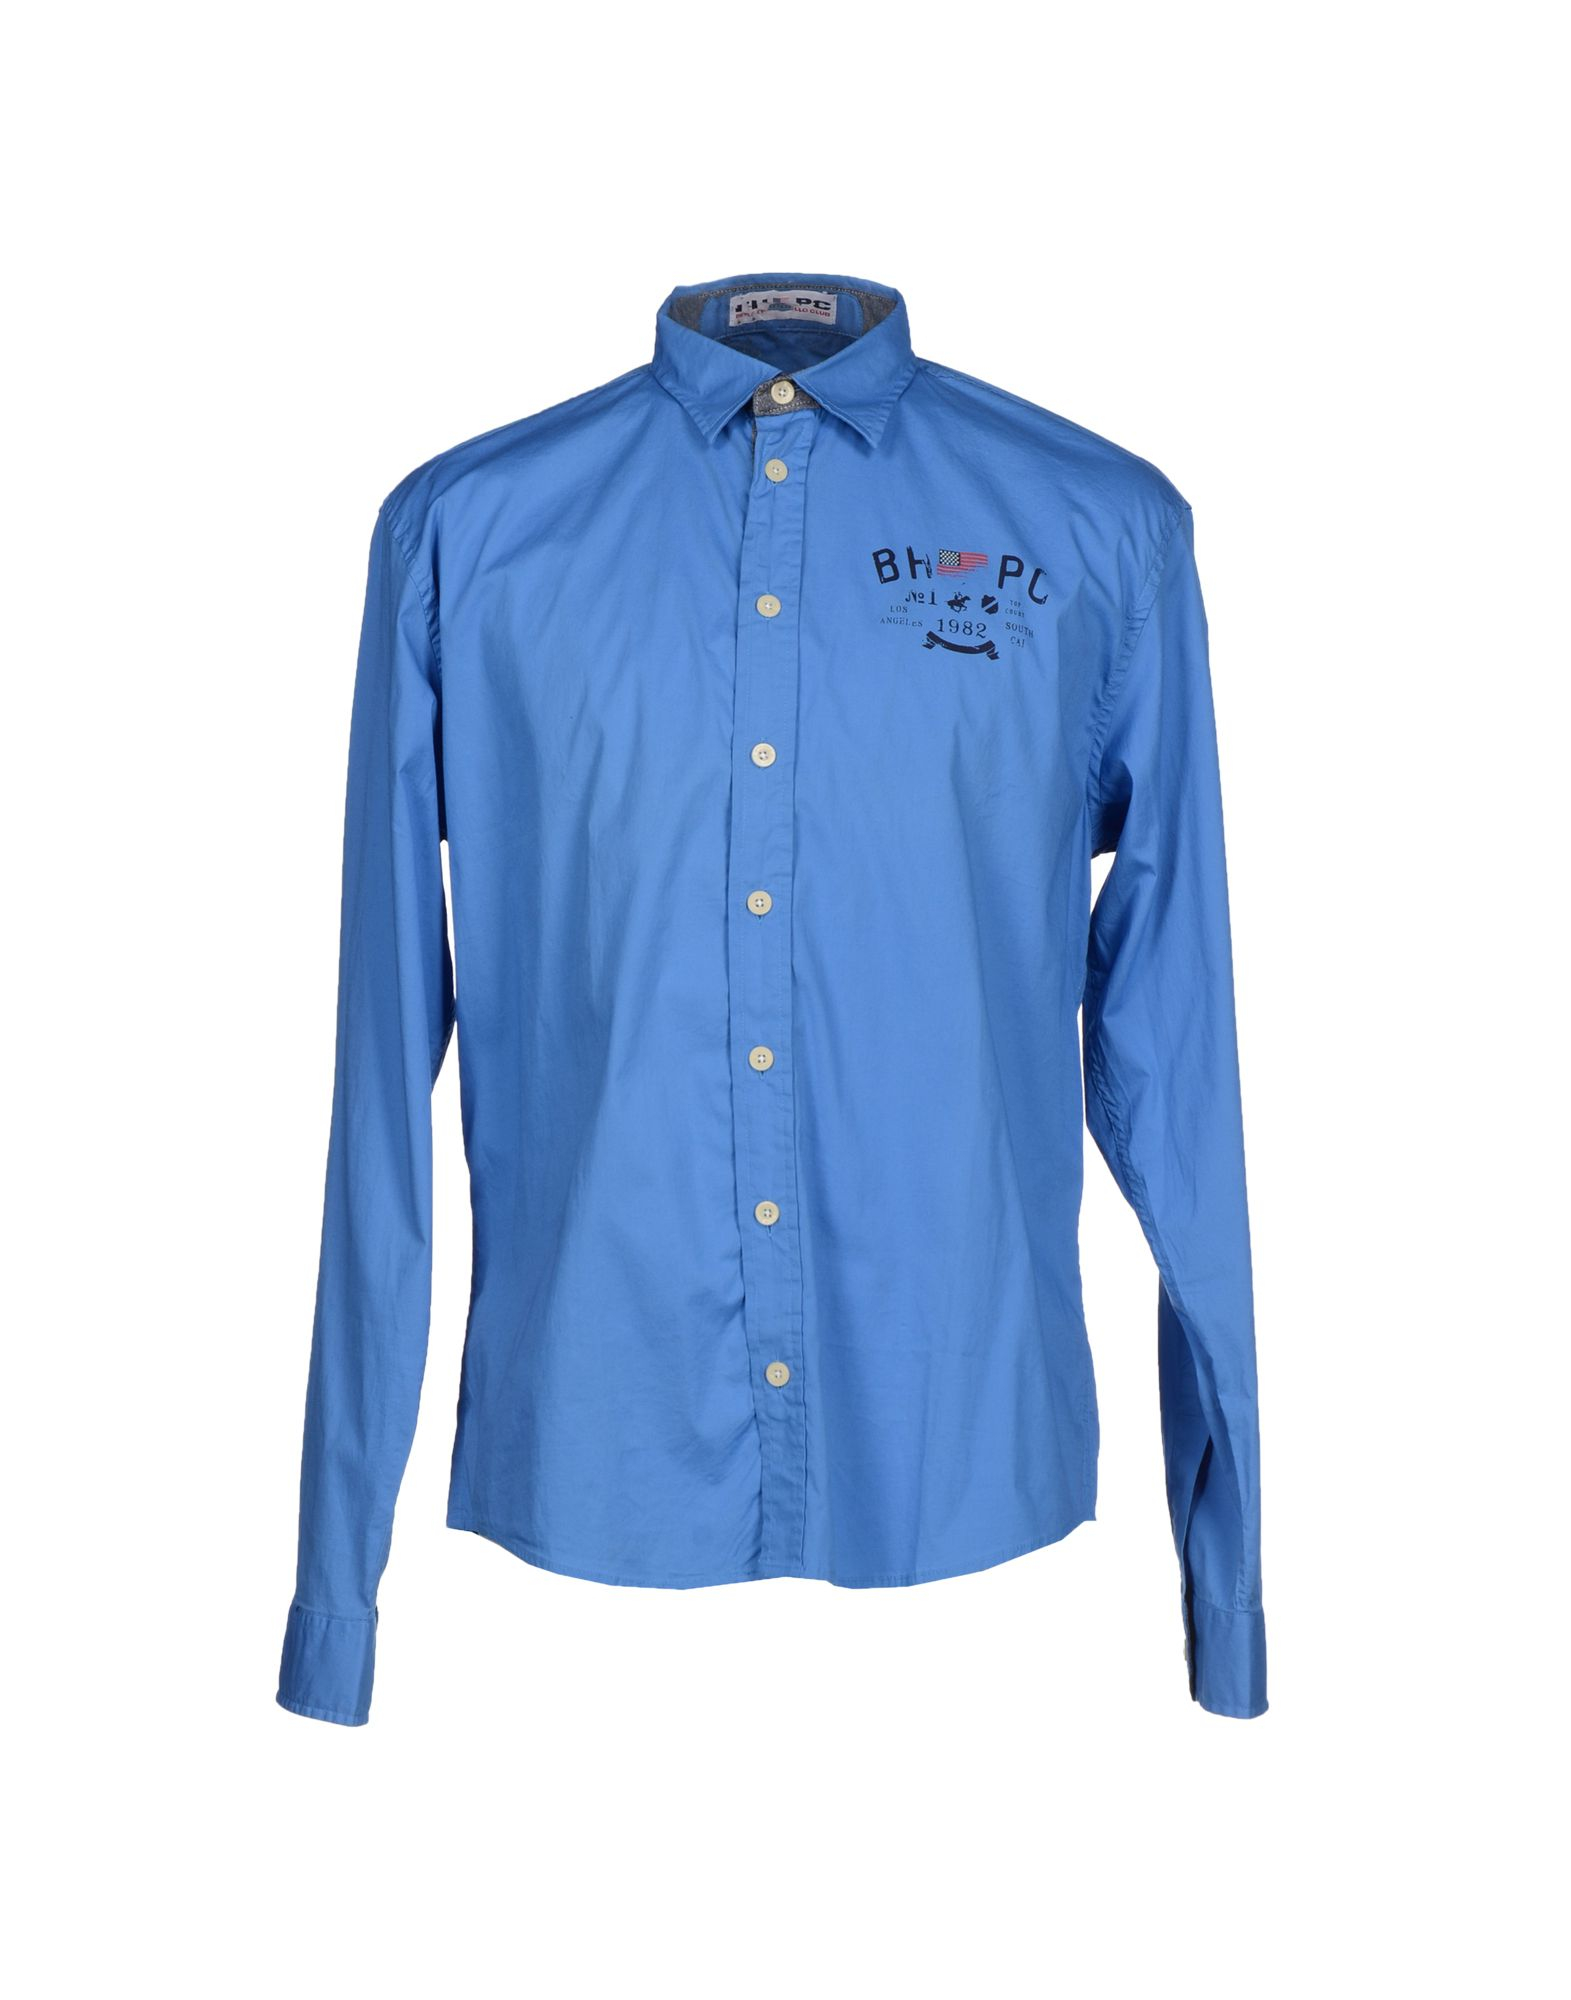 Beverly Hills Polo Club Shirt In Blue For Men Pastel Blue